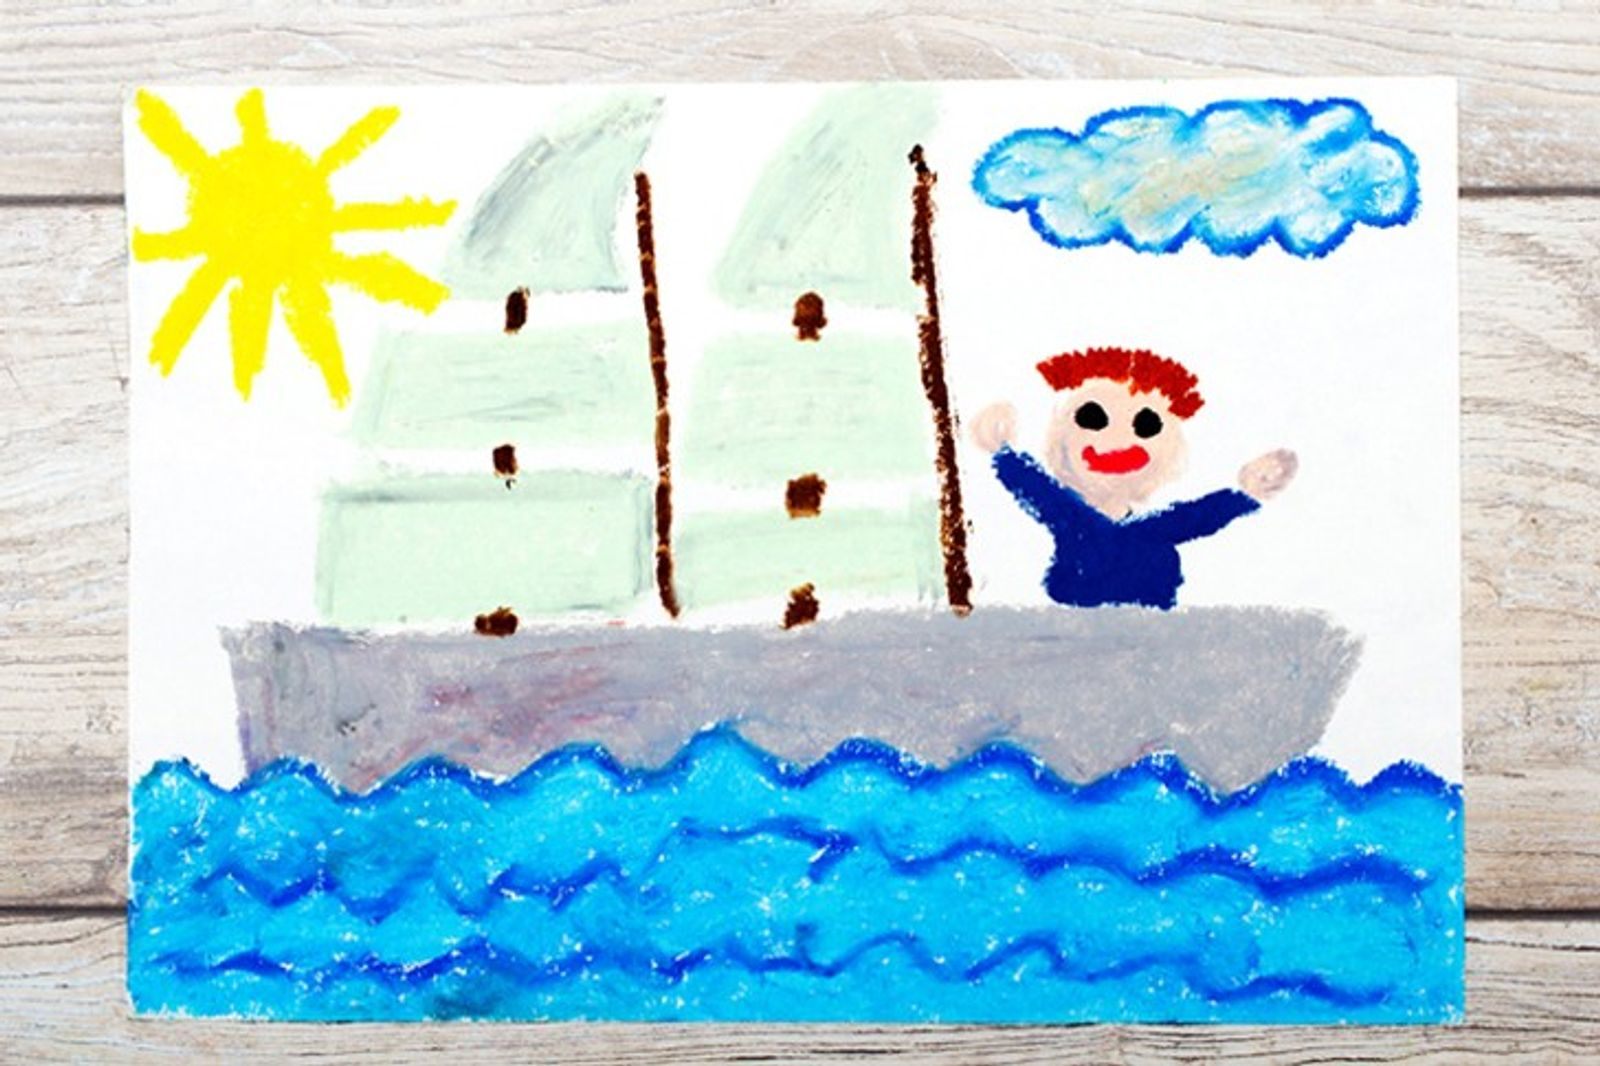 Summer trips cancelled? Keep kids inspired with crafty DIY postcards